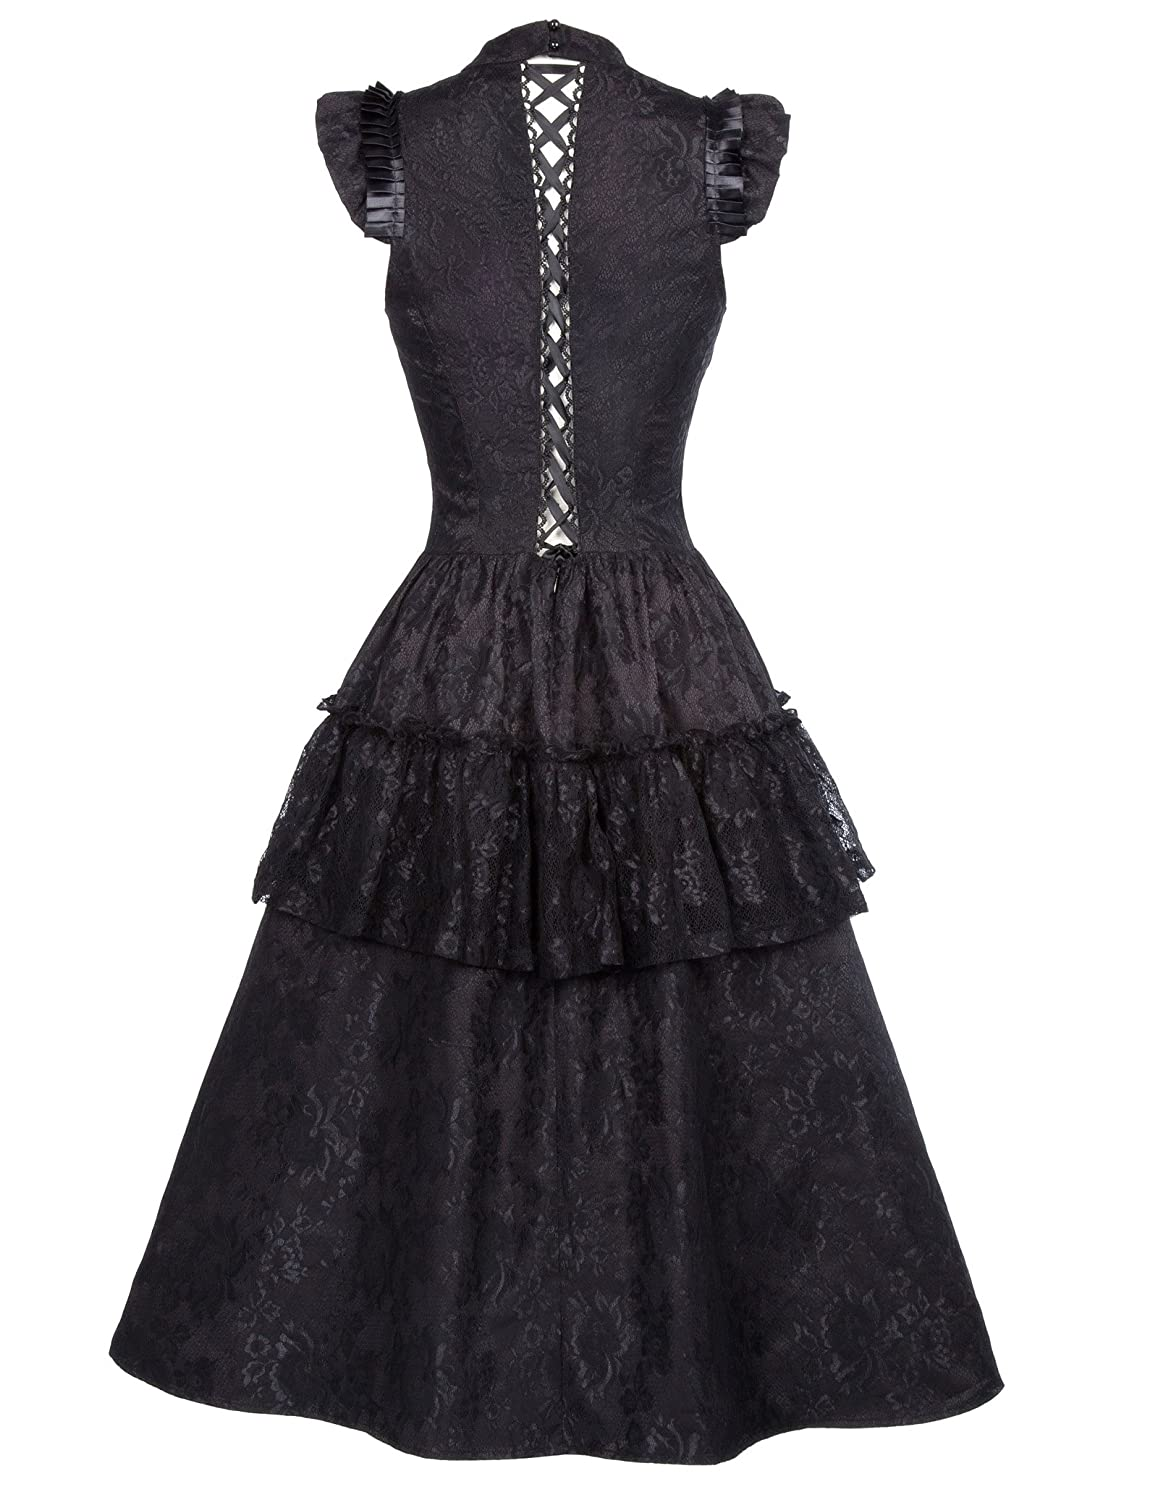 Amazon.com: Belle Poque Steampunk Victorian Gothic Lace Swing Dress ...